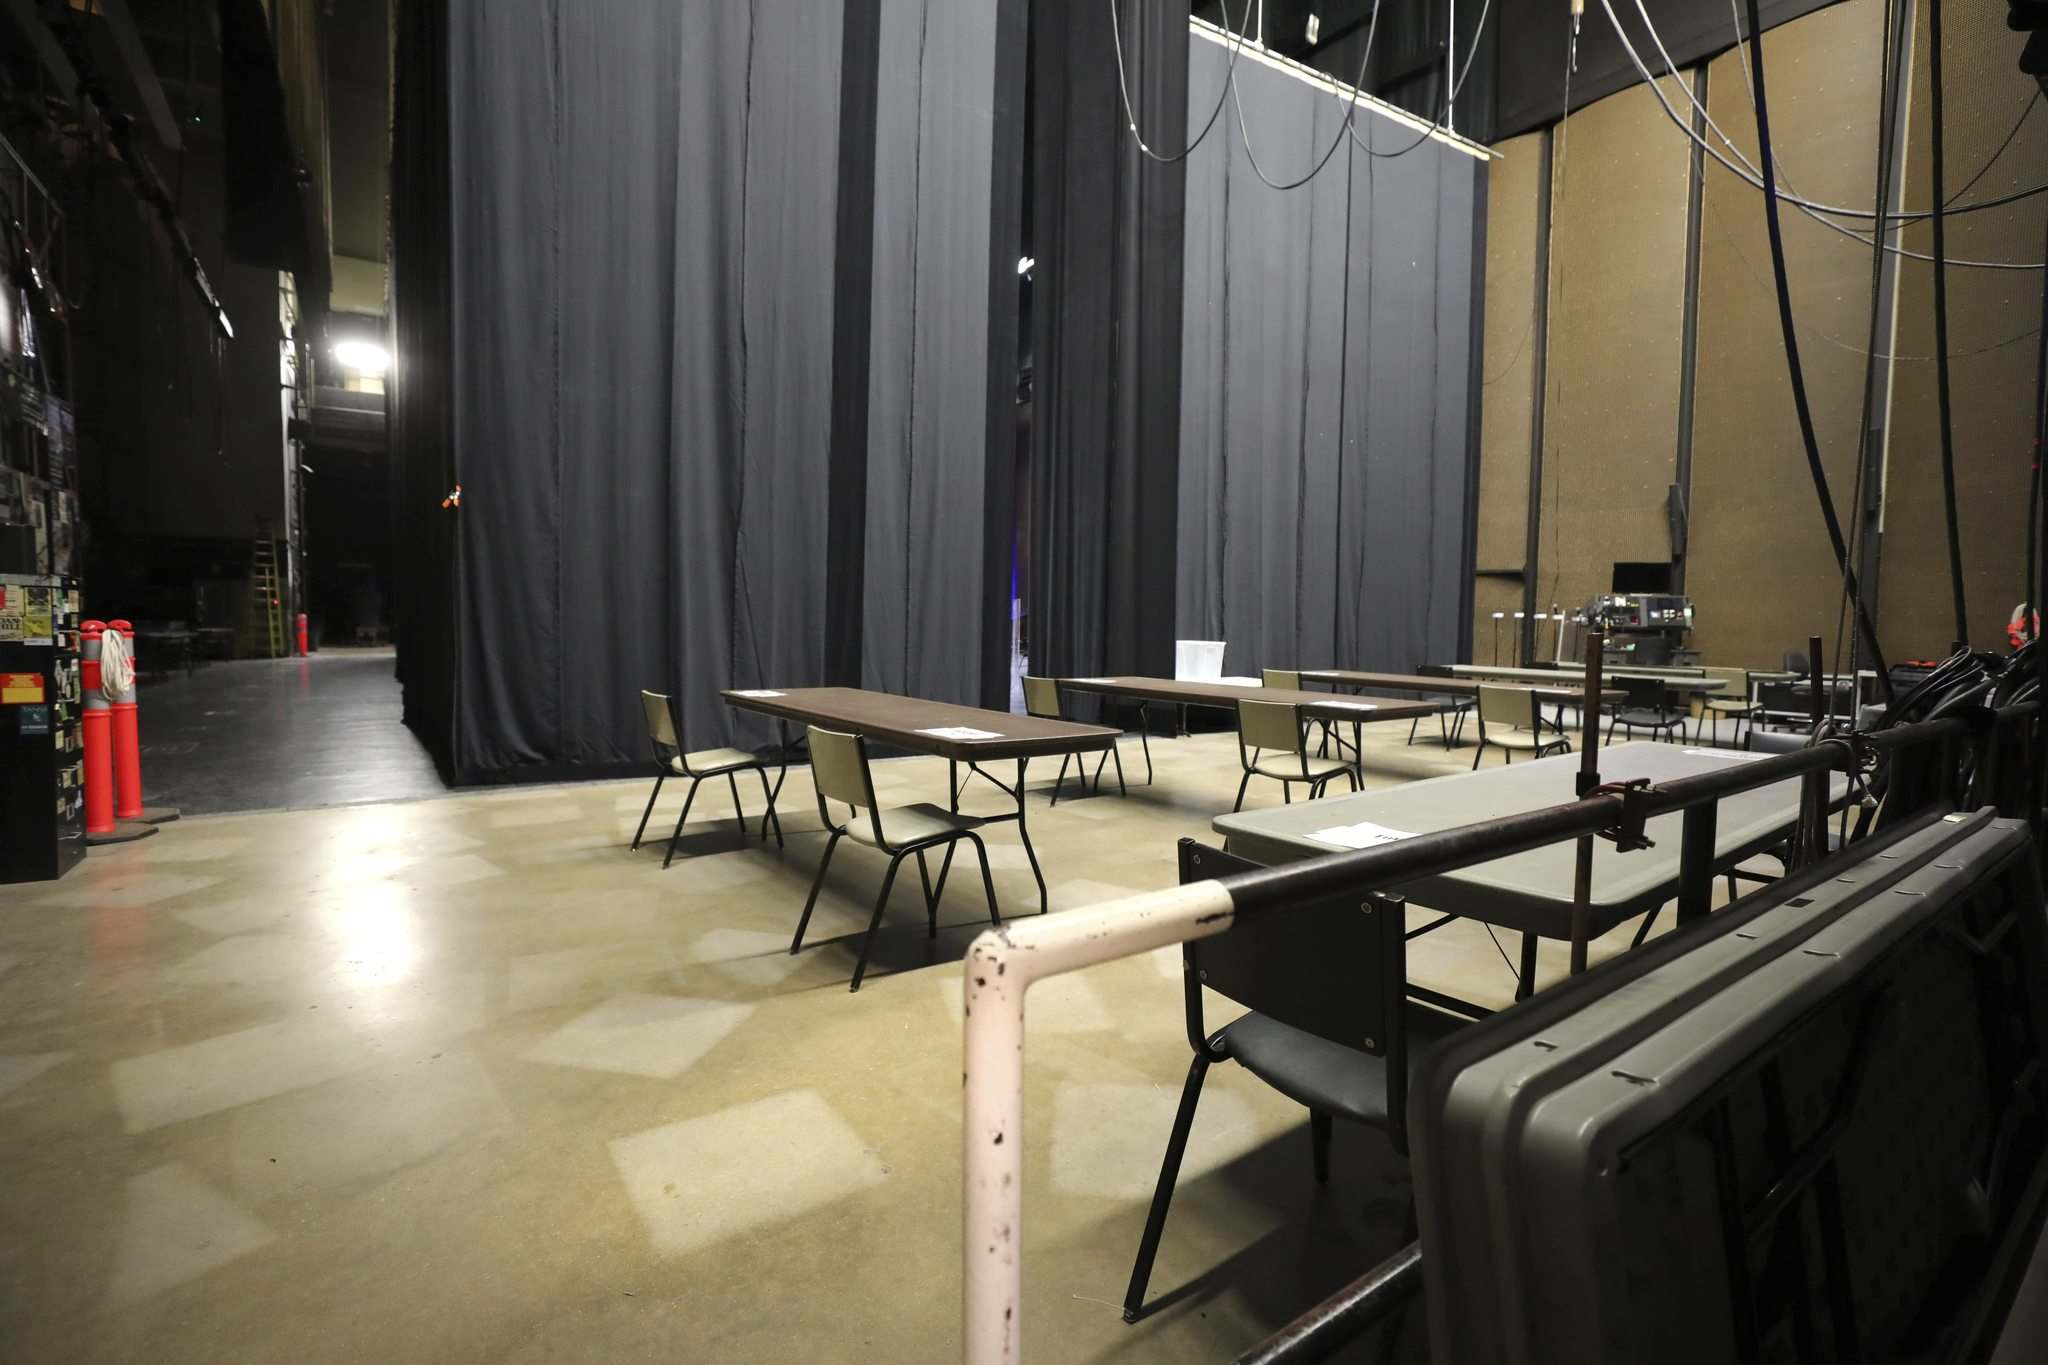 RUTH BONNEVILLE / WINNIPEG FREE PRESS</p><p>Physically distanced seating has been created for performers waiting in the wings before the show.</p>